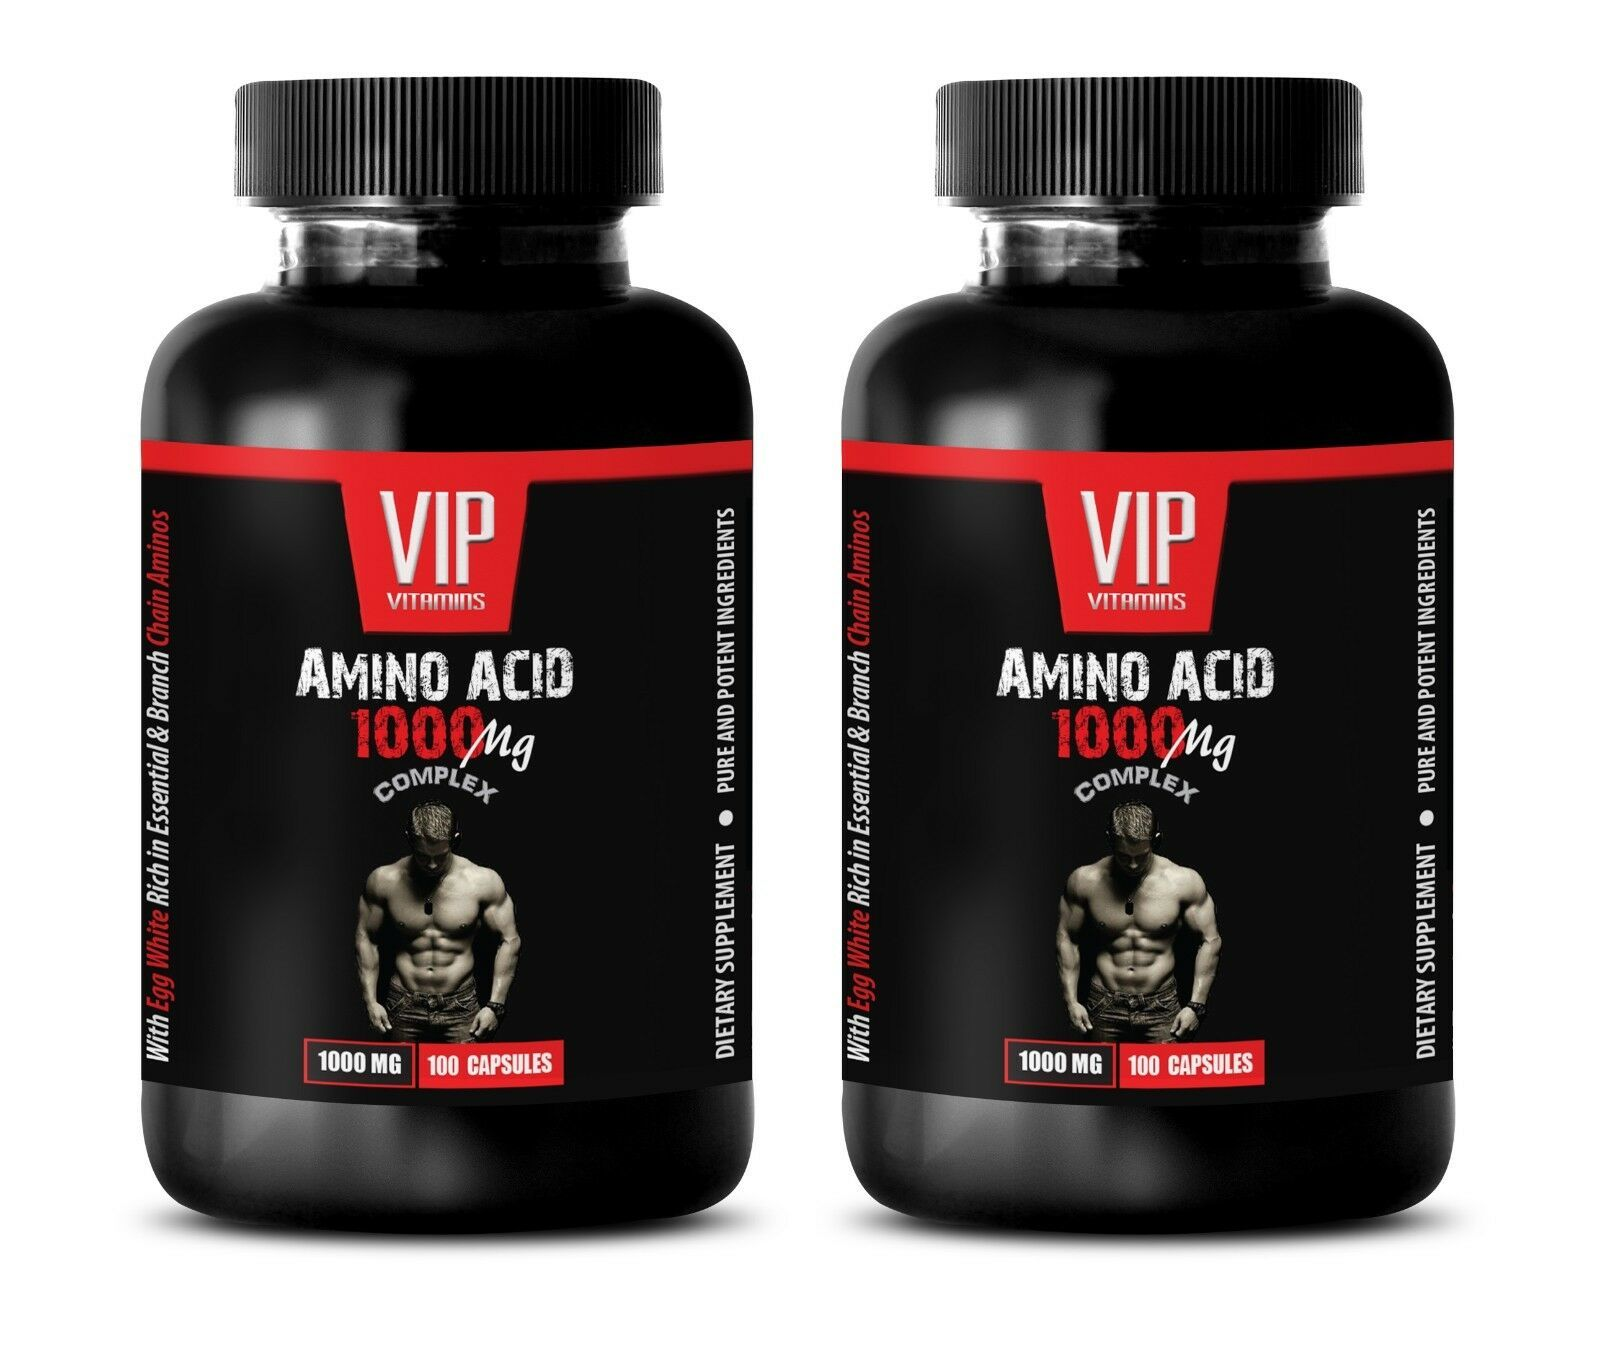 amino acids bcaa - AMINO ACID 1000mg - muscle recovery supplement 2 Bottles - $29.88